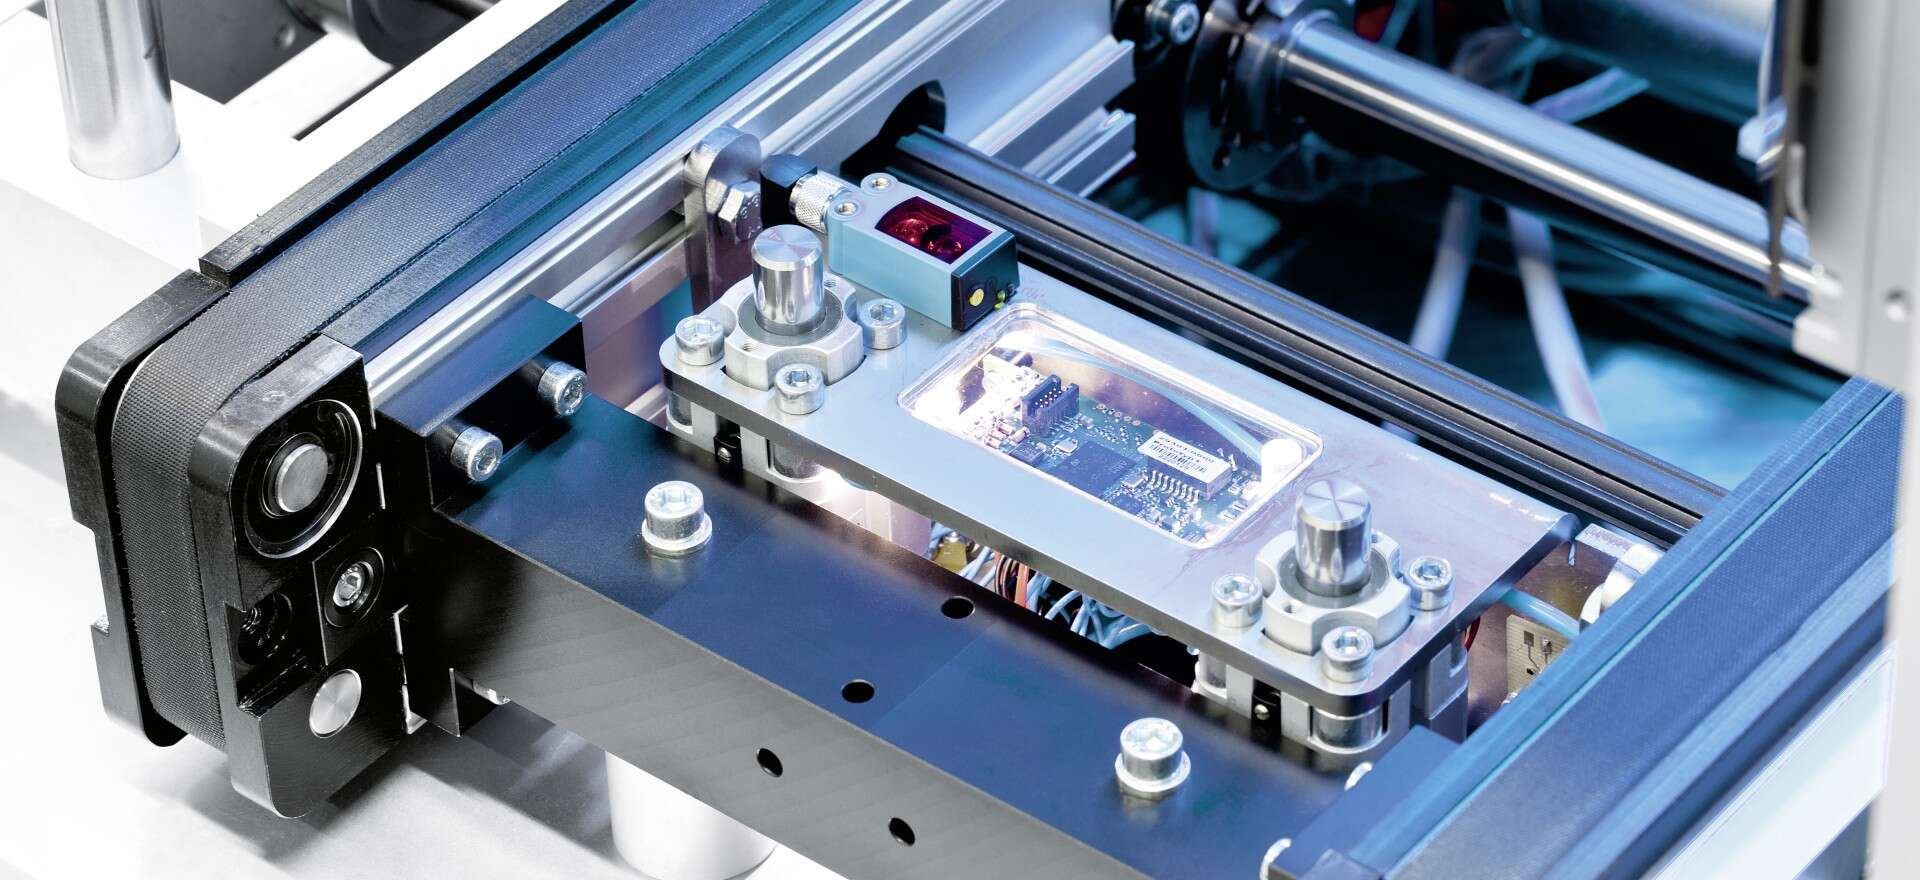 CPS Stopgate: intelligent components for the networked factory of the future